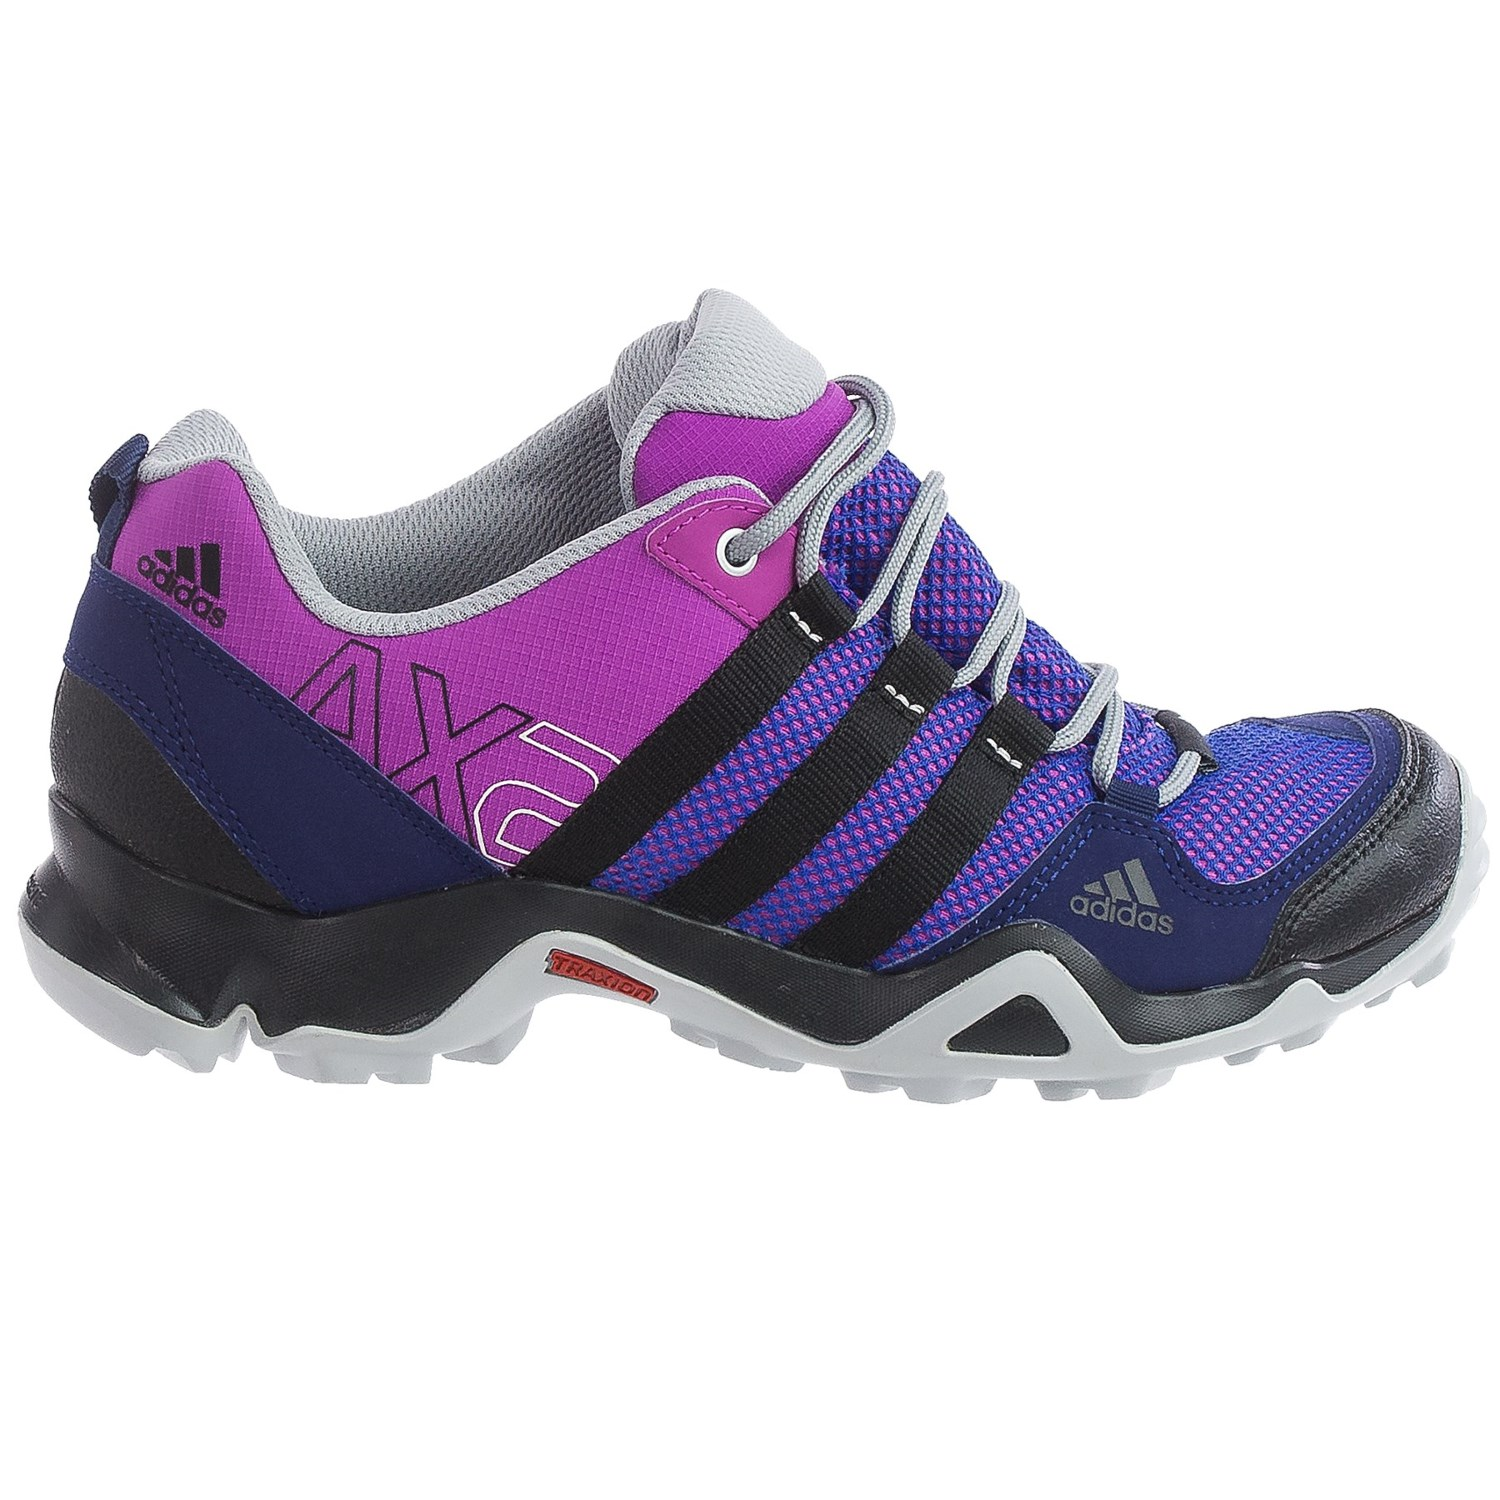 Adidas Outdoor Ax2 Hiking Shoes For Women Save 37